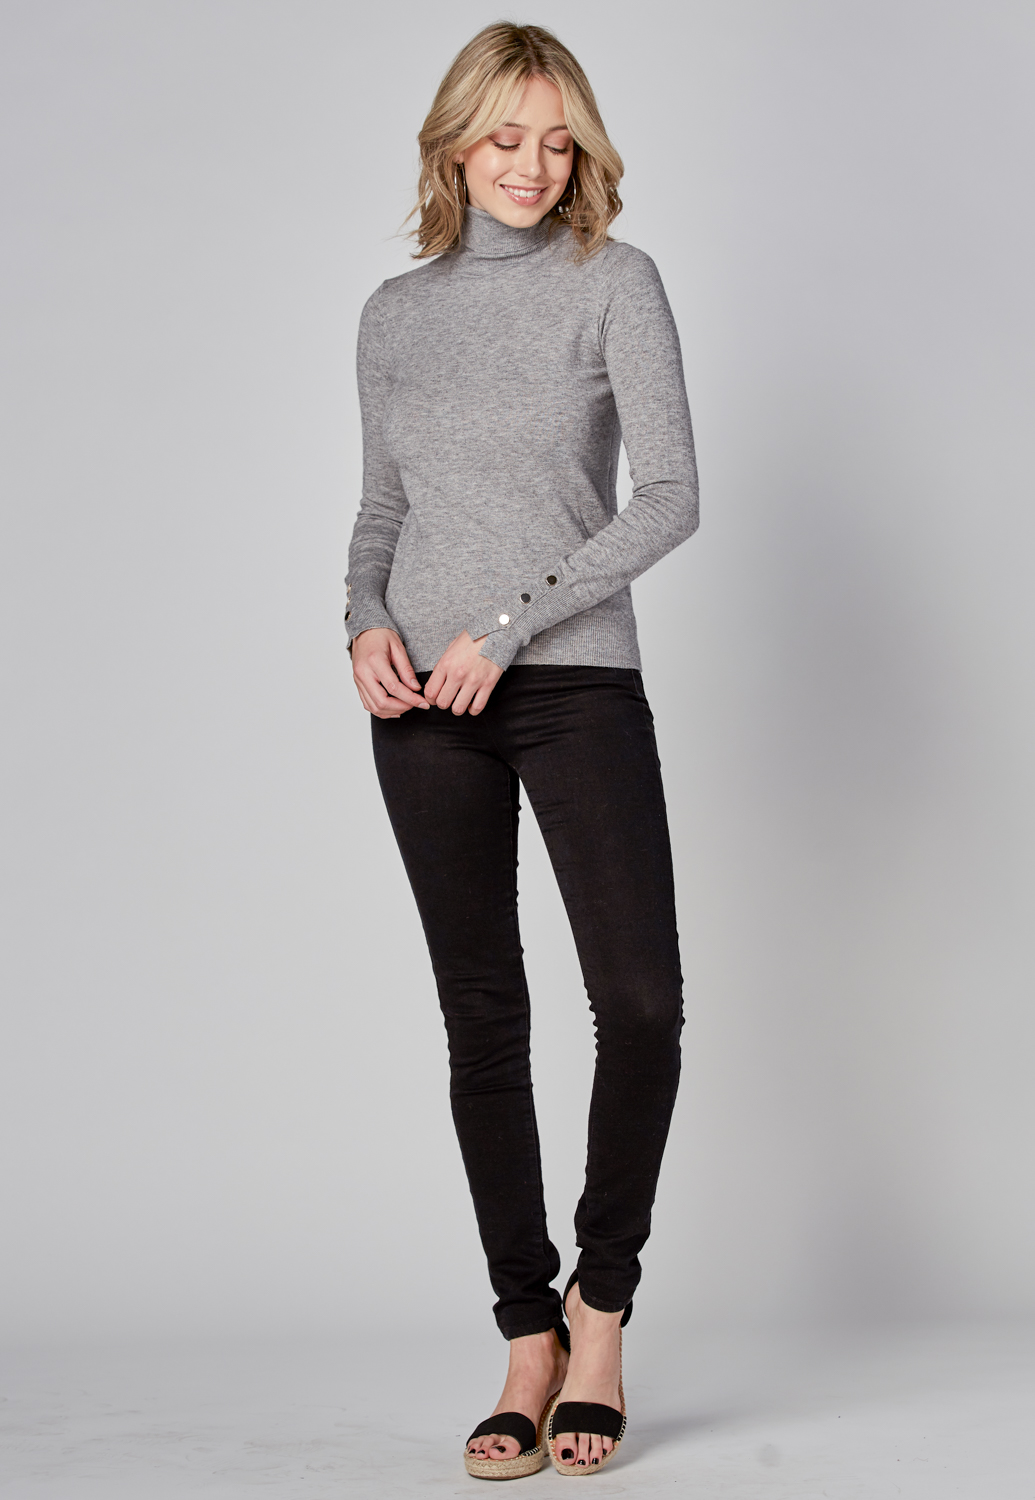 Knit Turtleneck With Gold Buttons